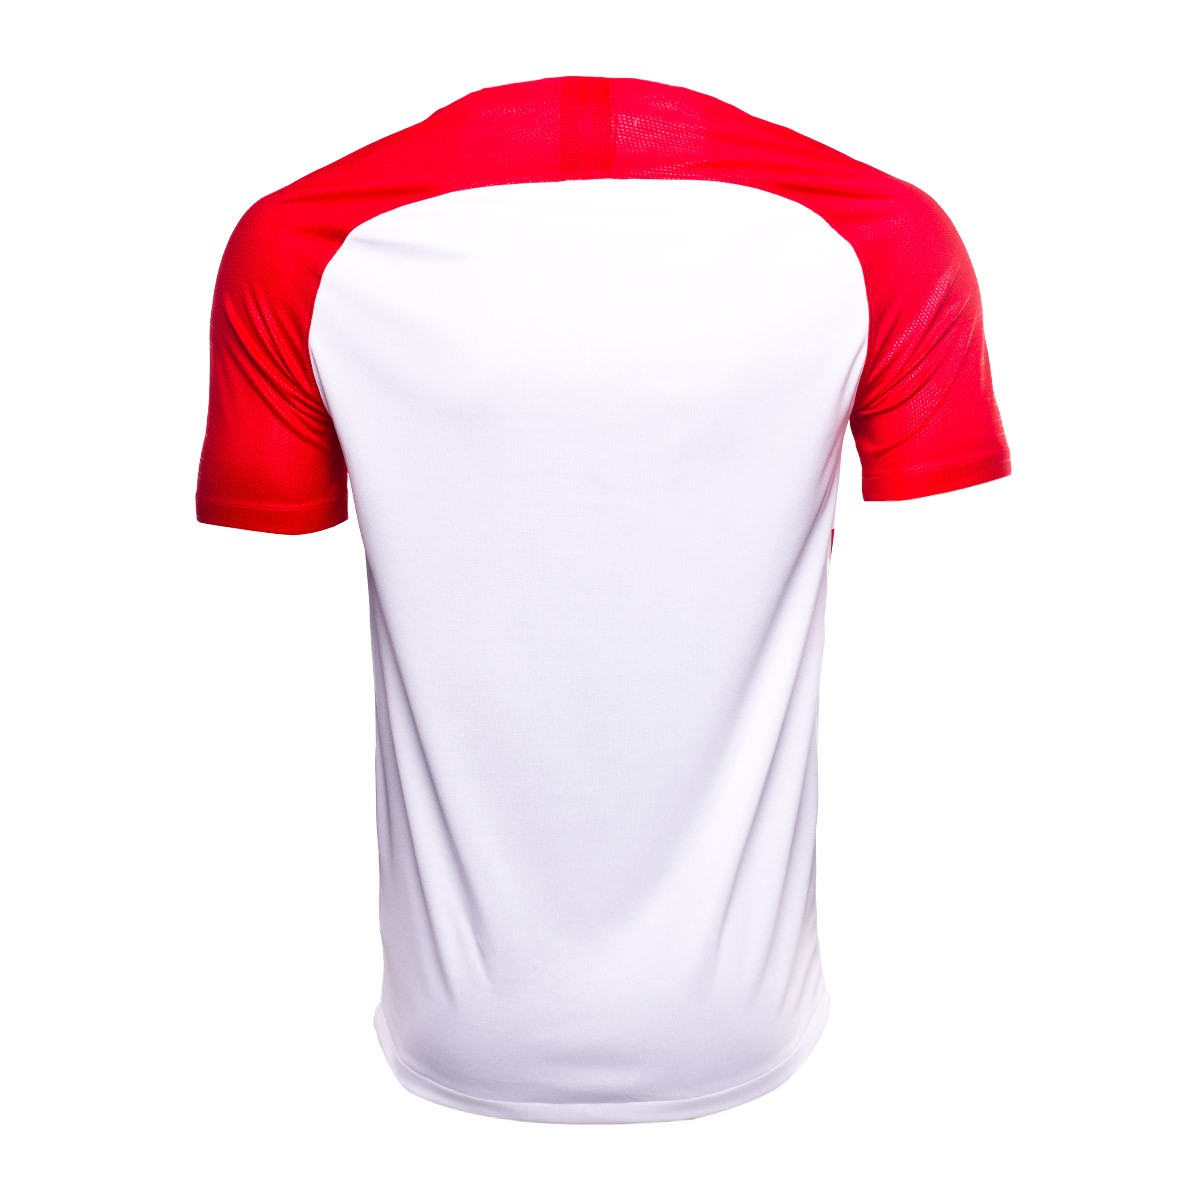 4c01f195f7 Camiseta Nike Croacia Breathe Stadium Primera Equipación 2018-2019  University red-White-Deep royal blue - Tienda de fútbol Fútbol Emotion